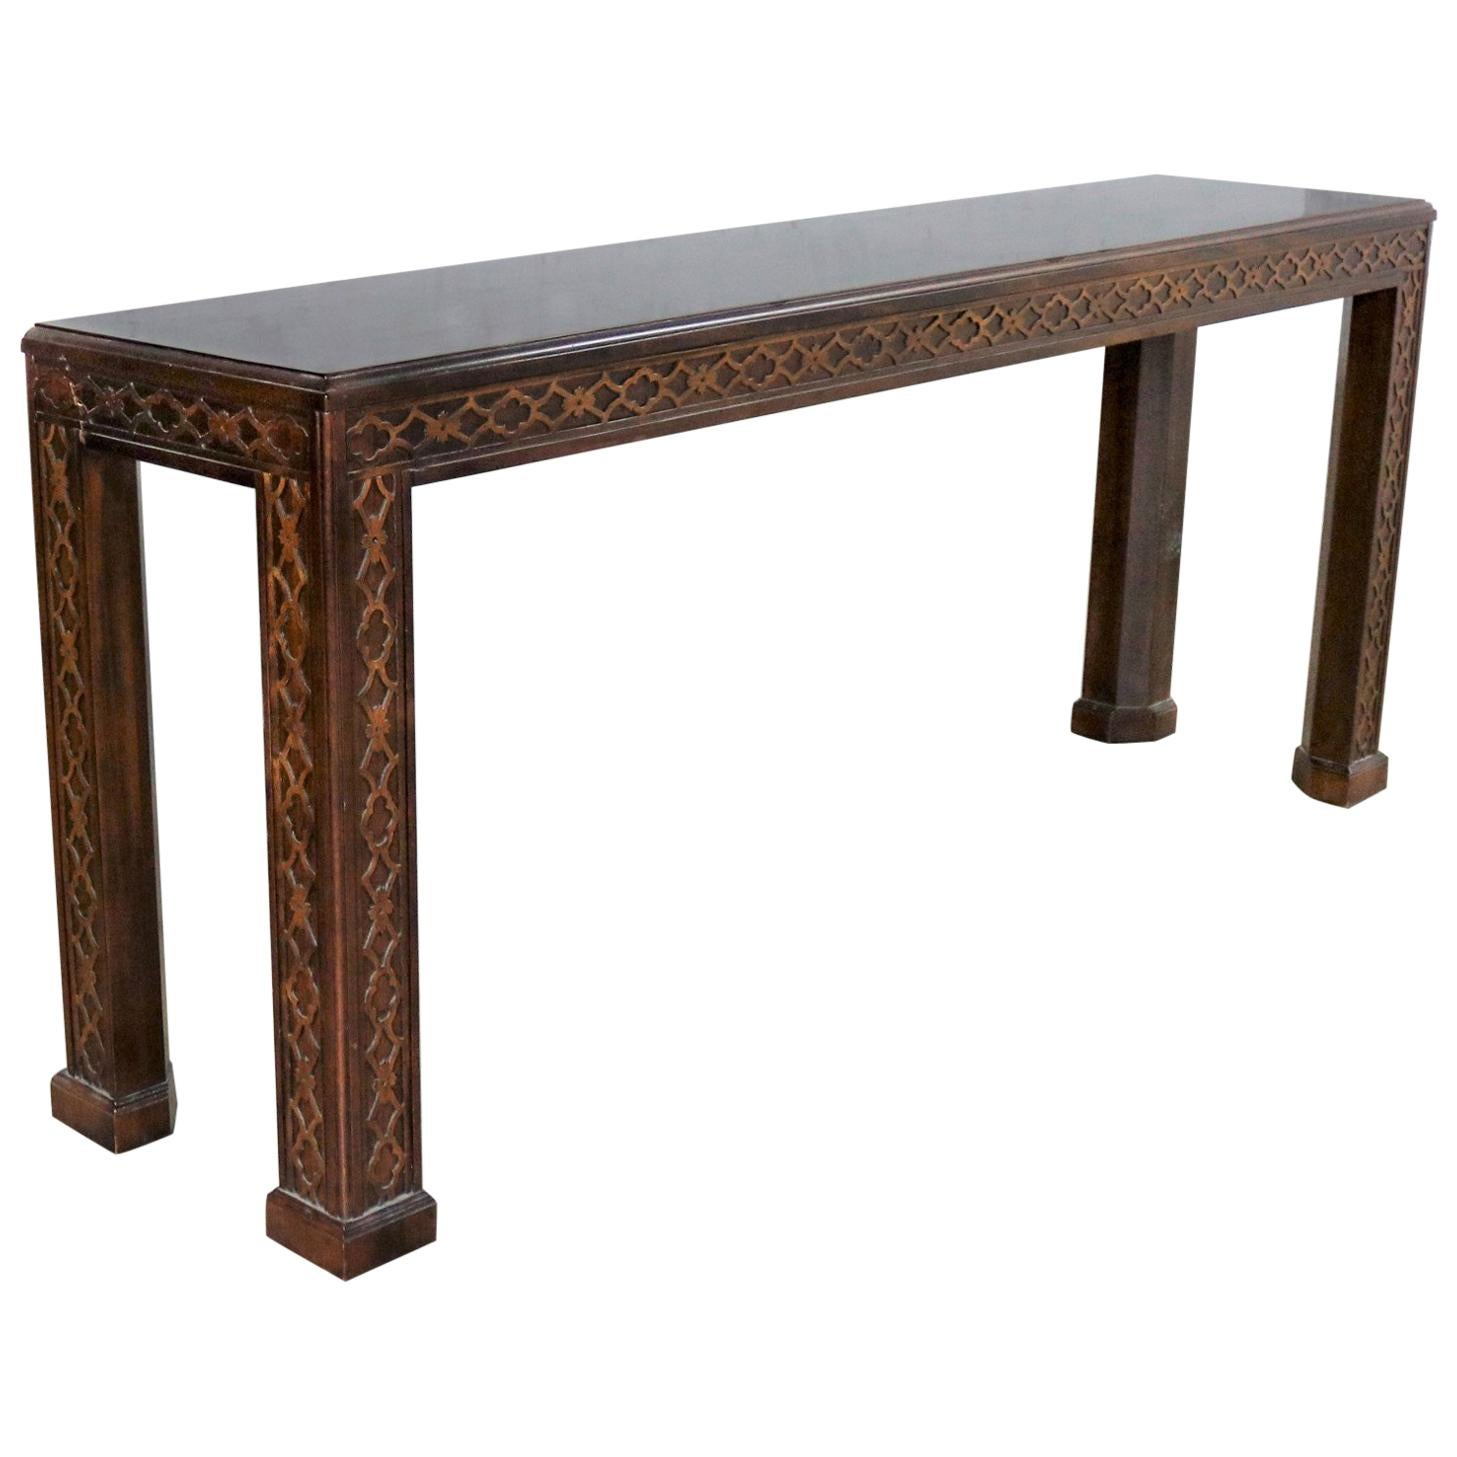 sale sofa tables most comfortable sleeper reviews henredon chinese chippendale chinoiserie console table dark finish fretwork for